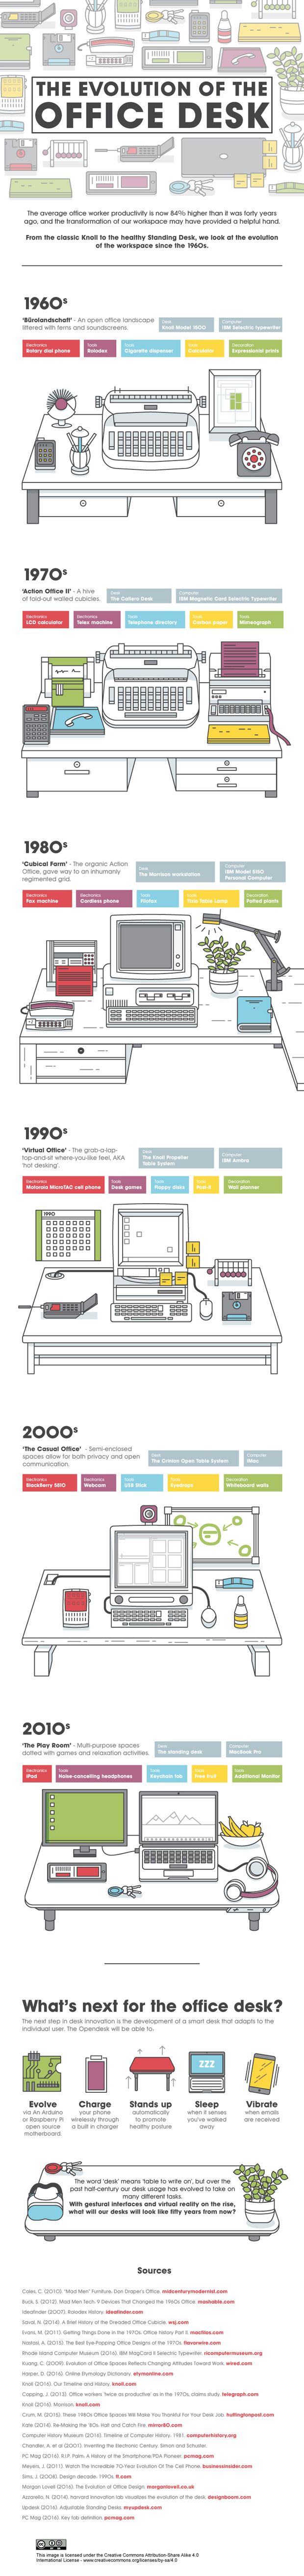 the-evolution-of-the-office-desk